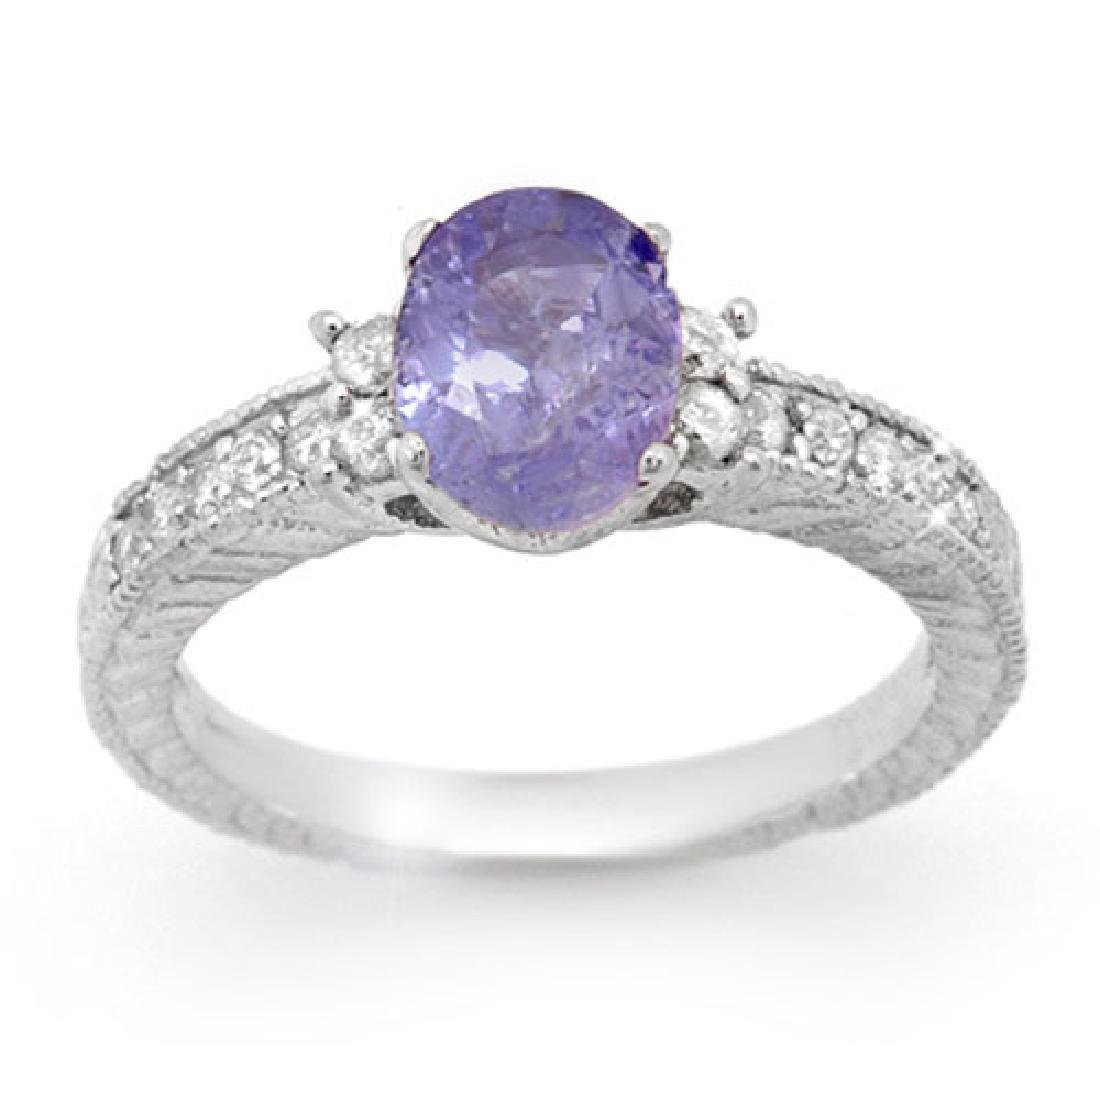 1.82 CTW Tanzanite & Diamond Ring 14K White Gold